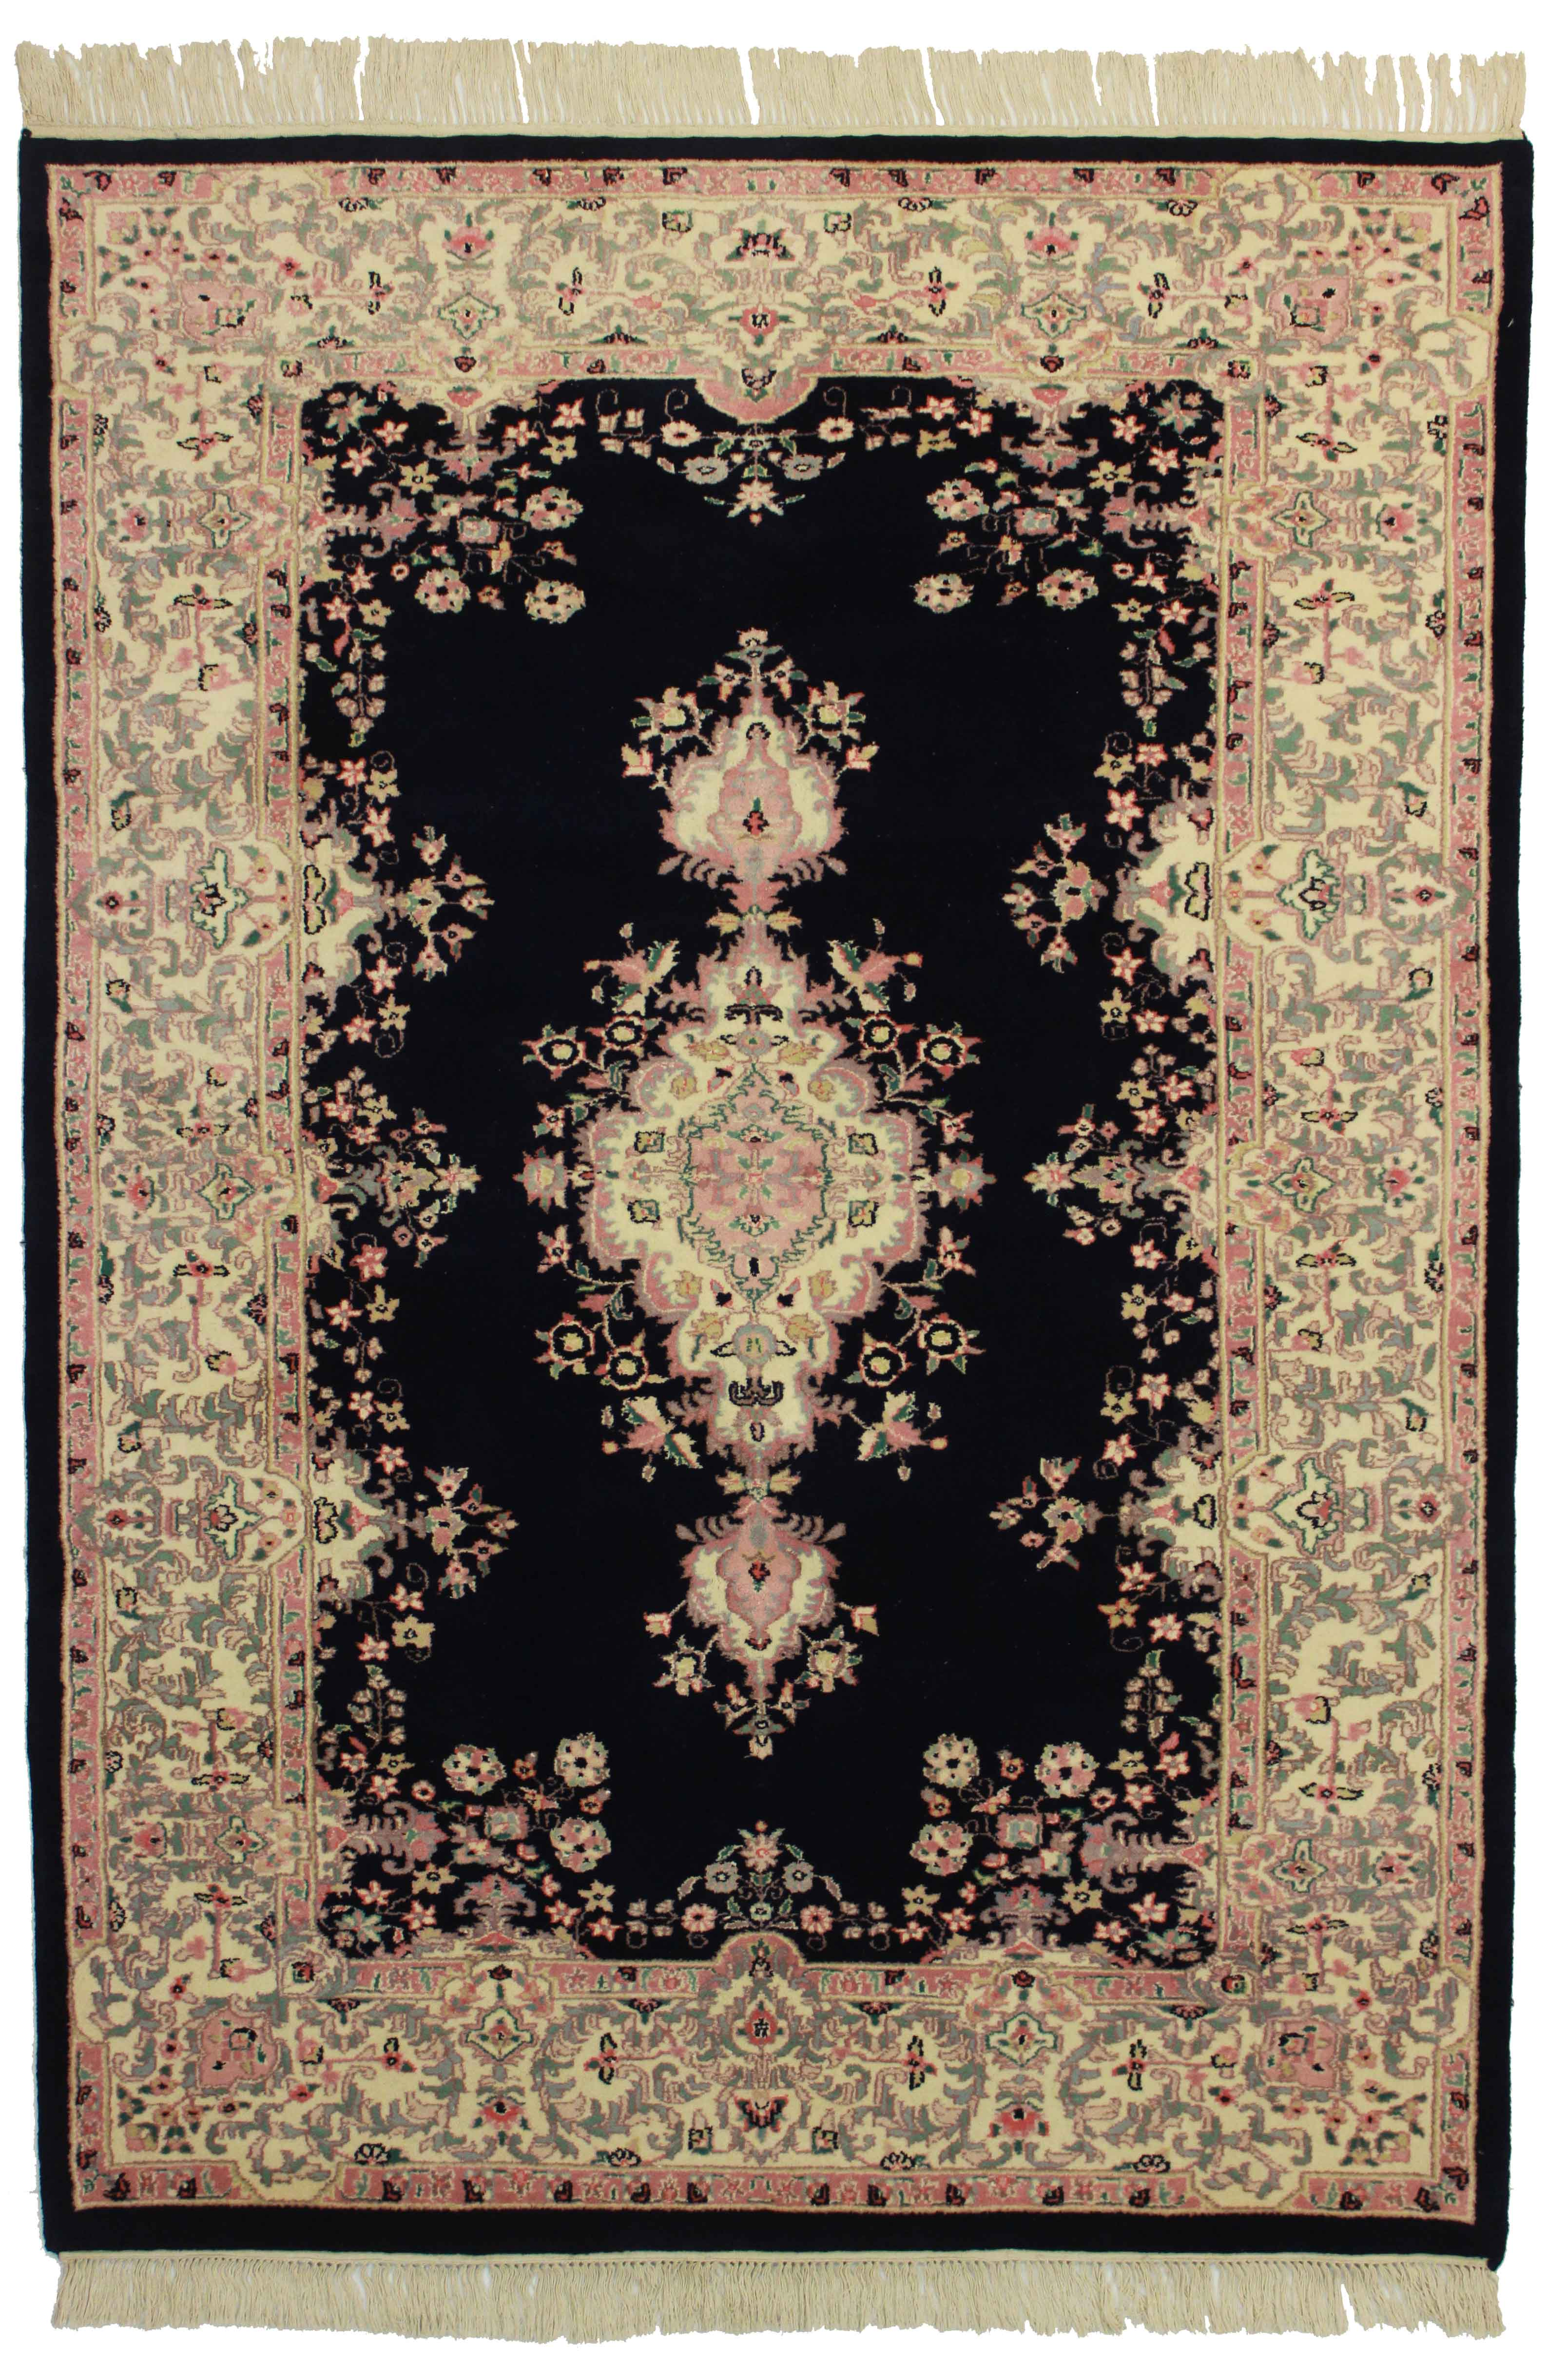 6 X 8 Indian Hand Knotted Wool Rug 8768 Exclusive Oriental Rugs